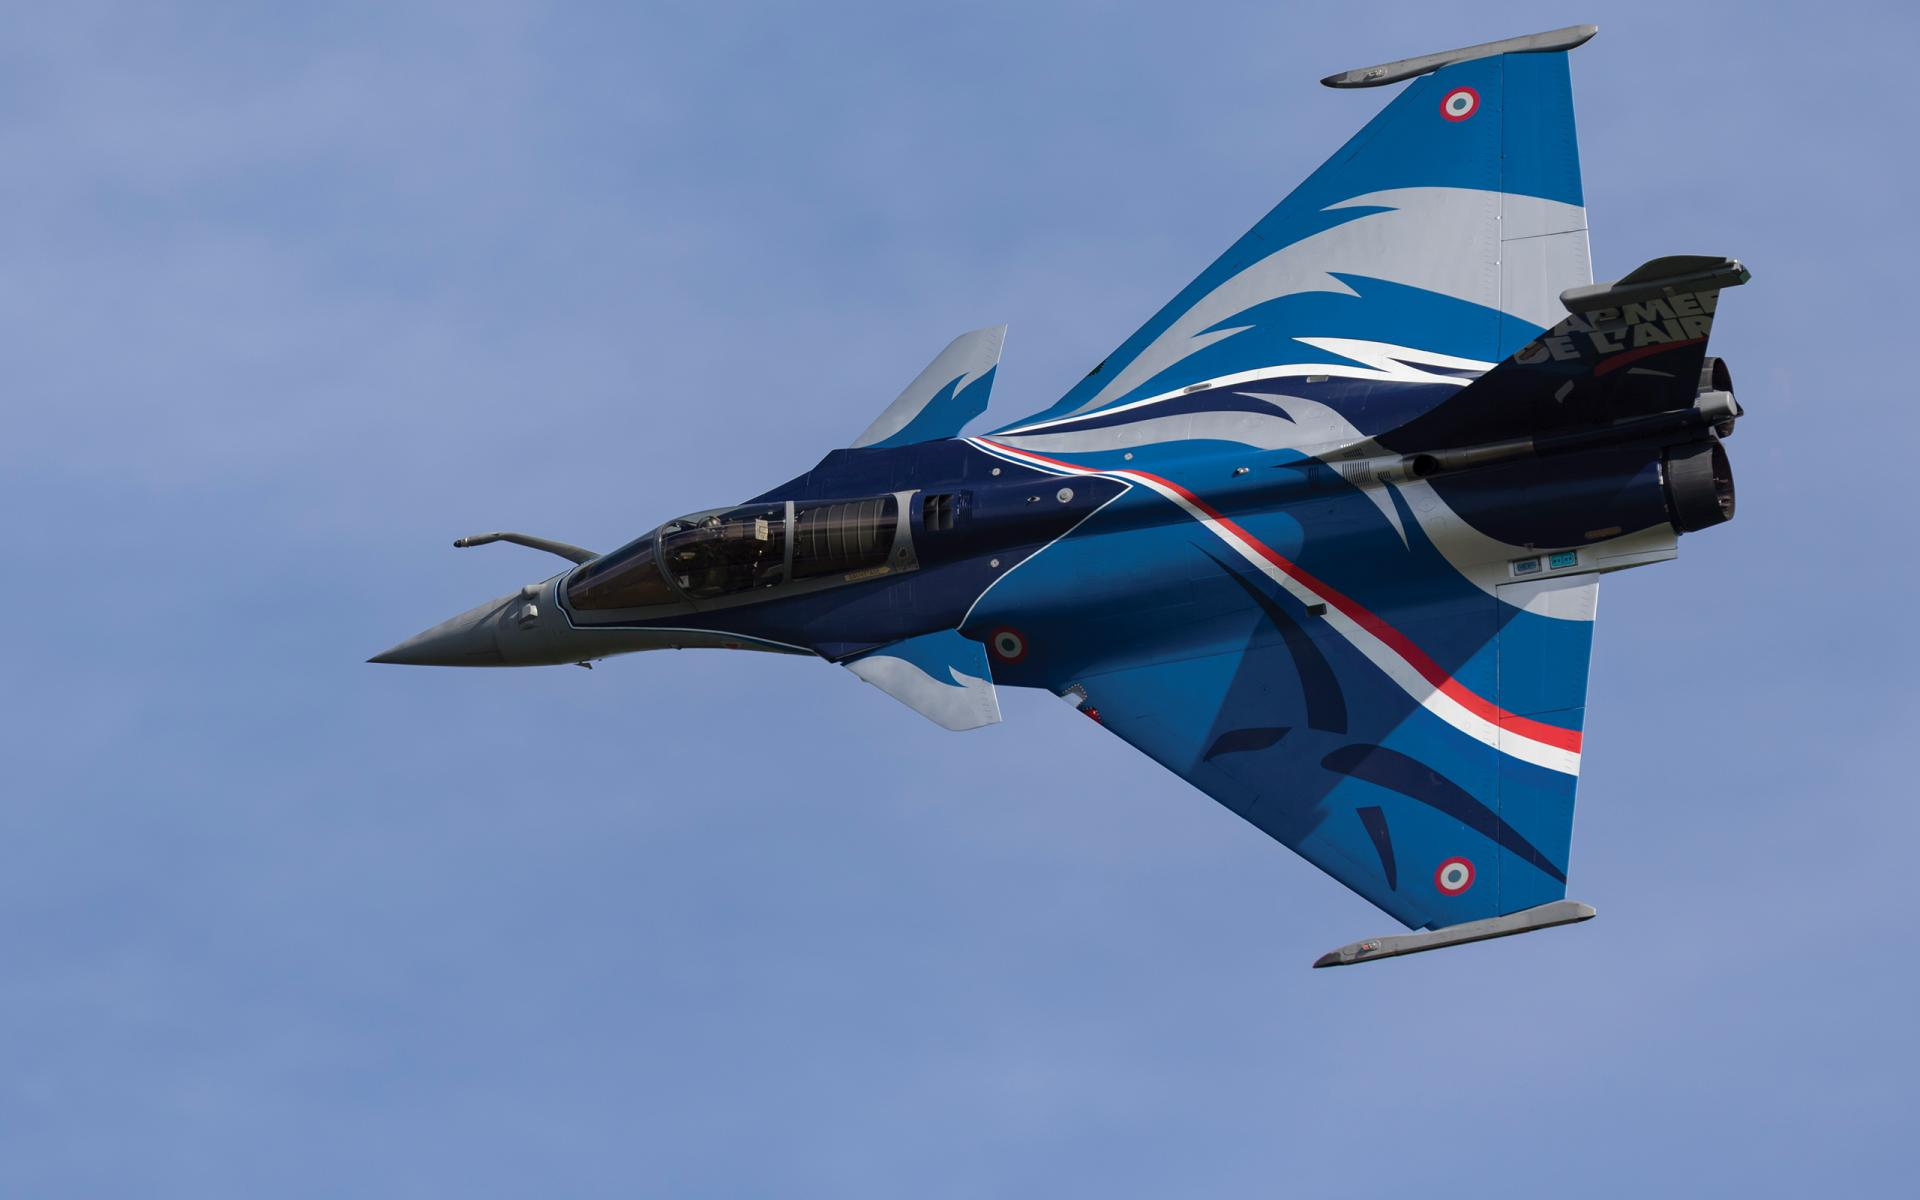 A Dassualt Rafale of The French Air Force shows its 2017 livery to the duxford crowd